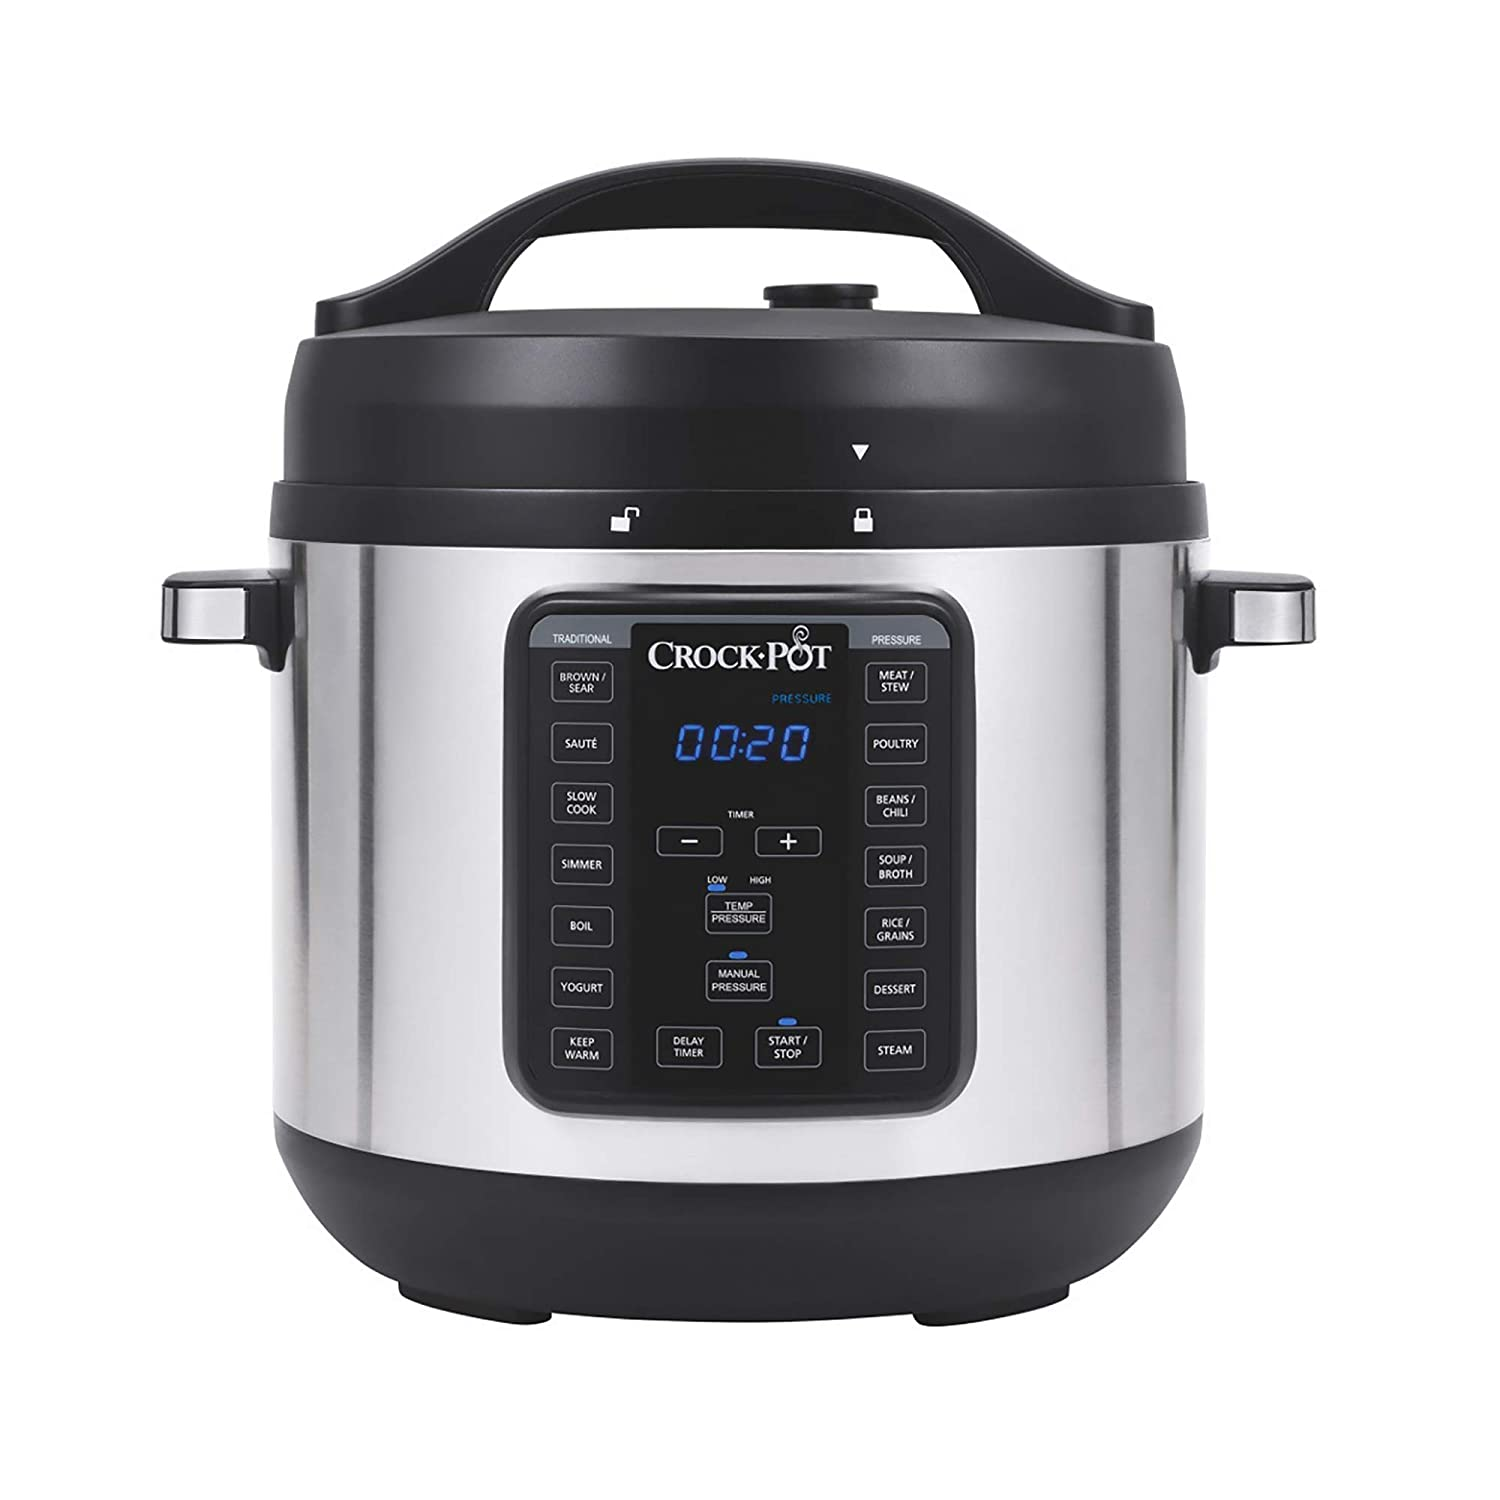 Crock-pot SCCPPC800-V1 8-Quart Multi-Use XL Express Crock Programmable Slow Cooker with Manual Pressure, Boil & Simmer, Stainless Steel